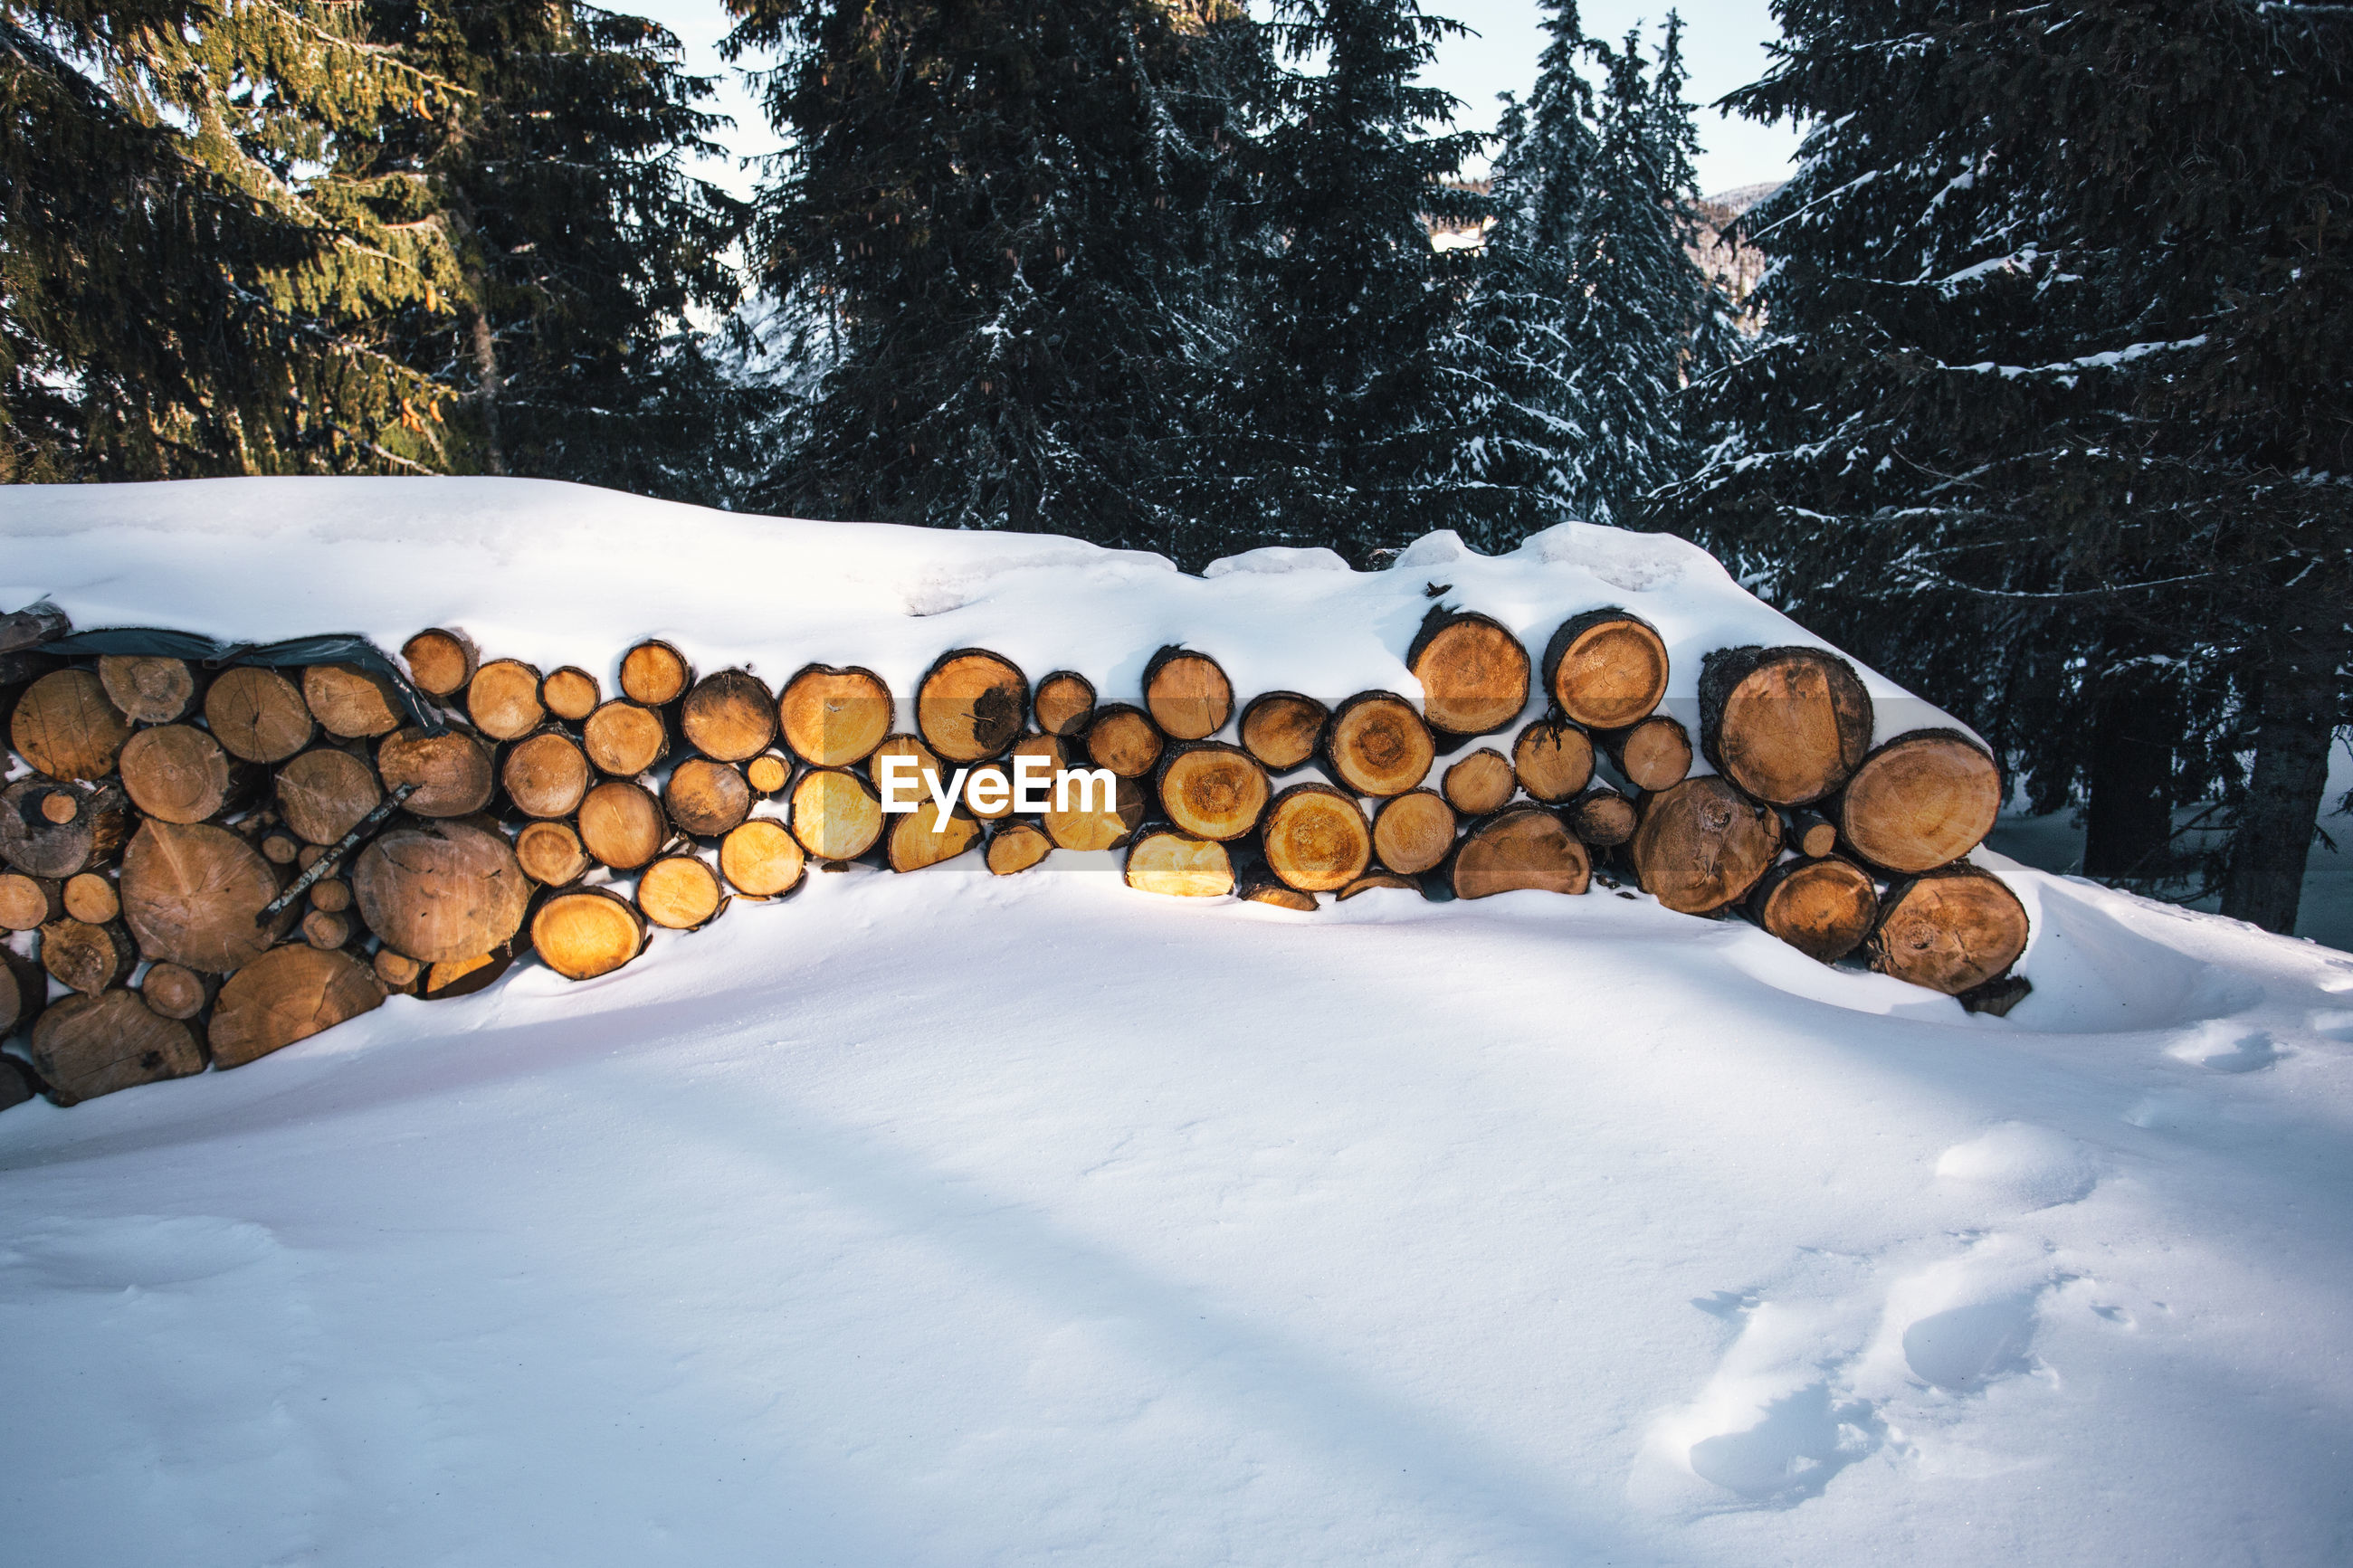 Snow covered stack of logs against trees in forest